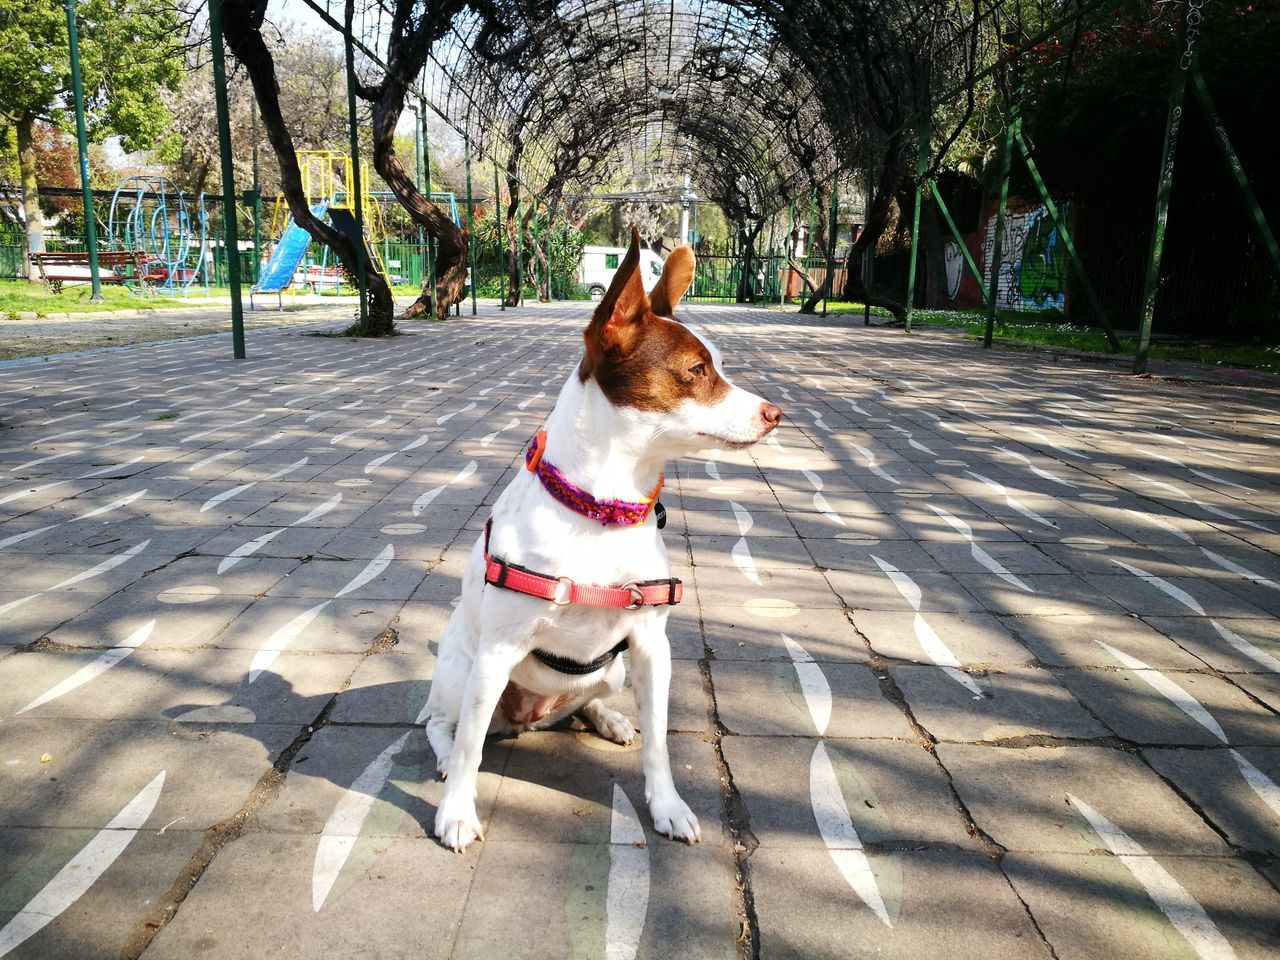 Pets Dog Domestic Animals One Animal Animal Themes Outdoors Shadow Sunlight No People Sand Day Tree Mammal Protruding Nature Soypanchita